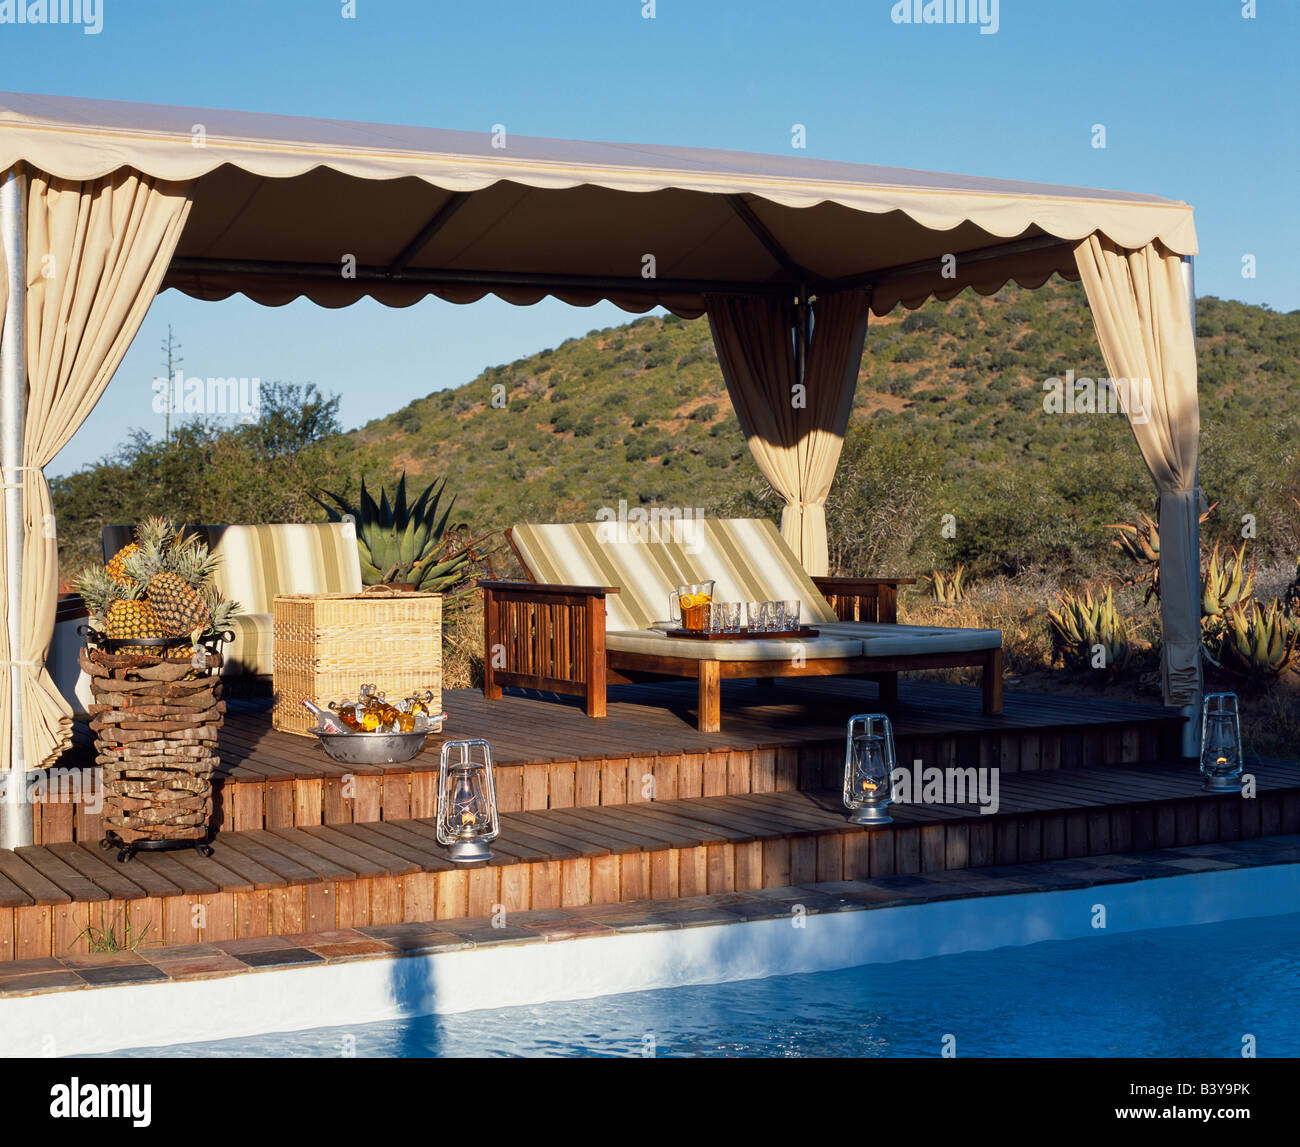 South Africa Eastern Cape Kwandwe Sun Loungers On A Canopied Deck Stock Photo Royalty Free